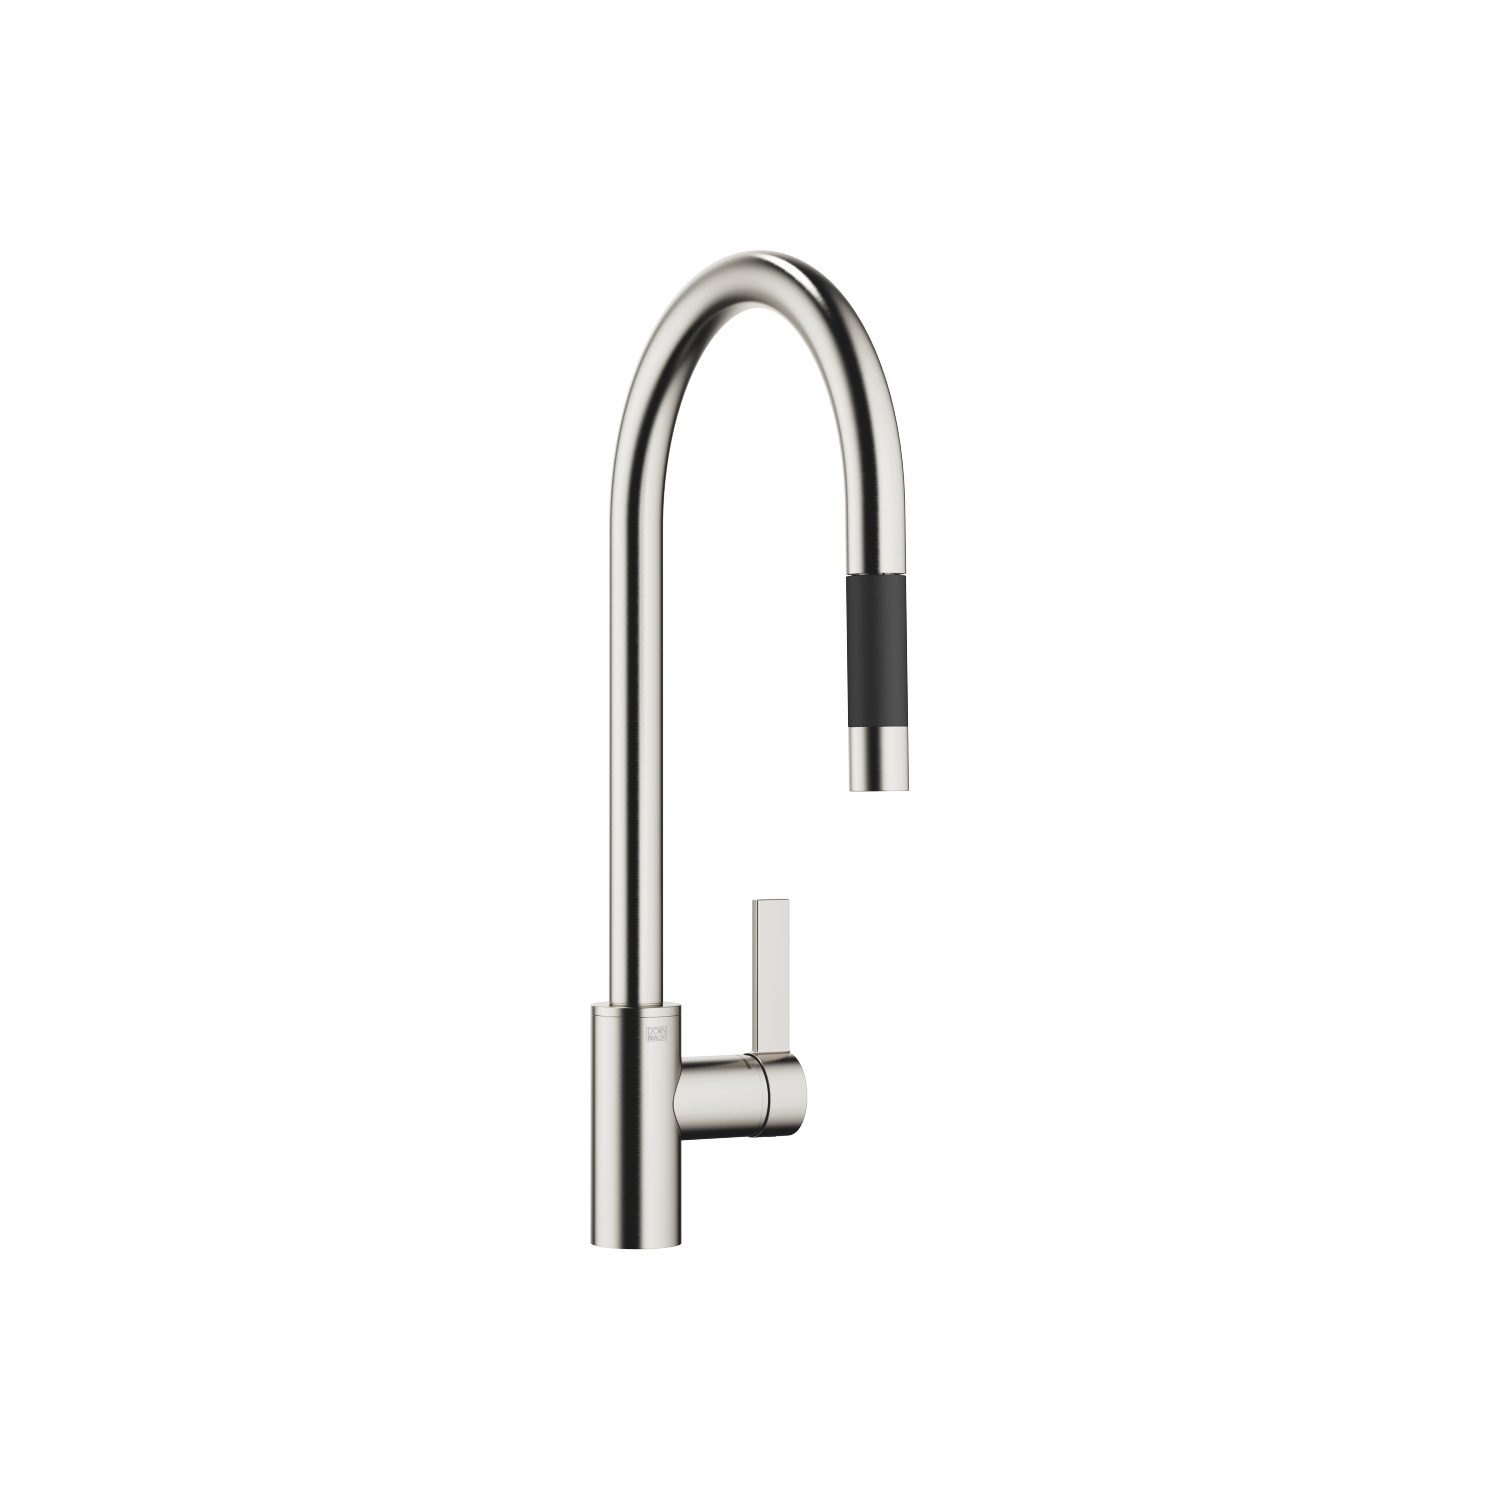 Single-lever mixer Pull-down with spray function - platinum matt